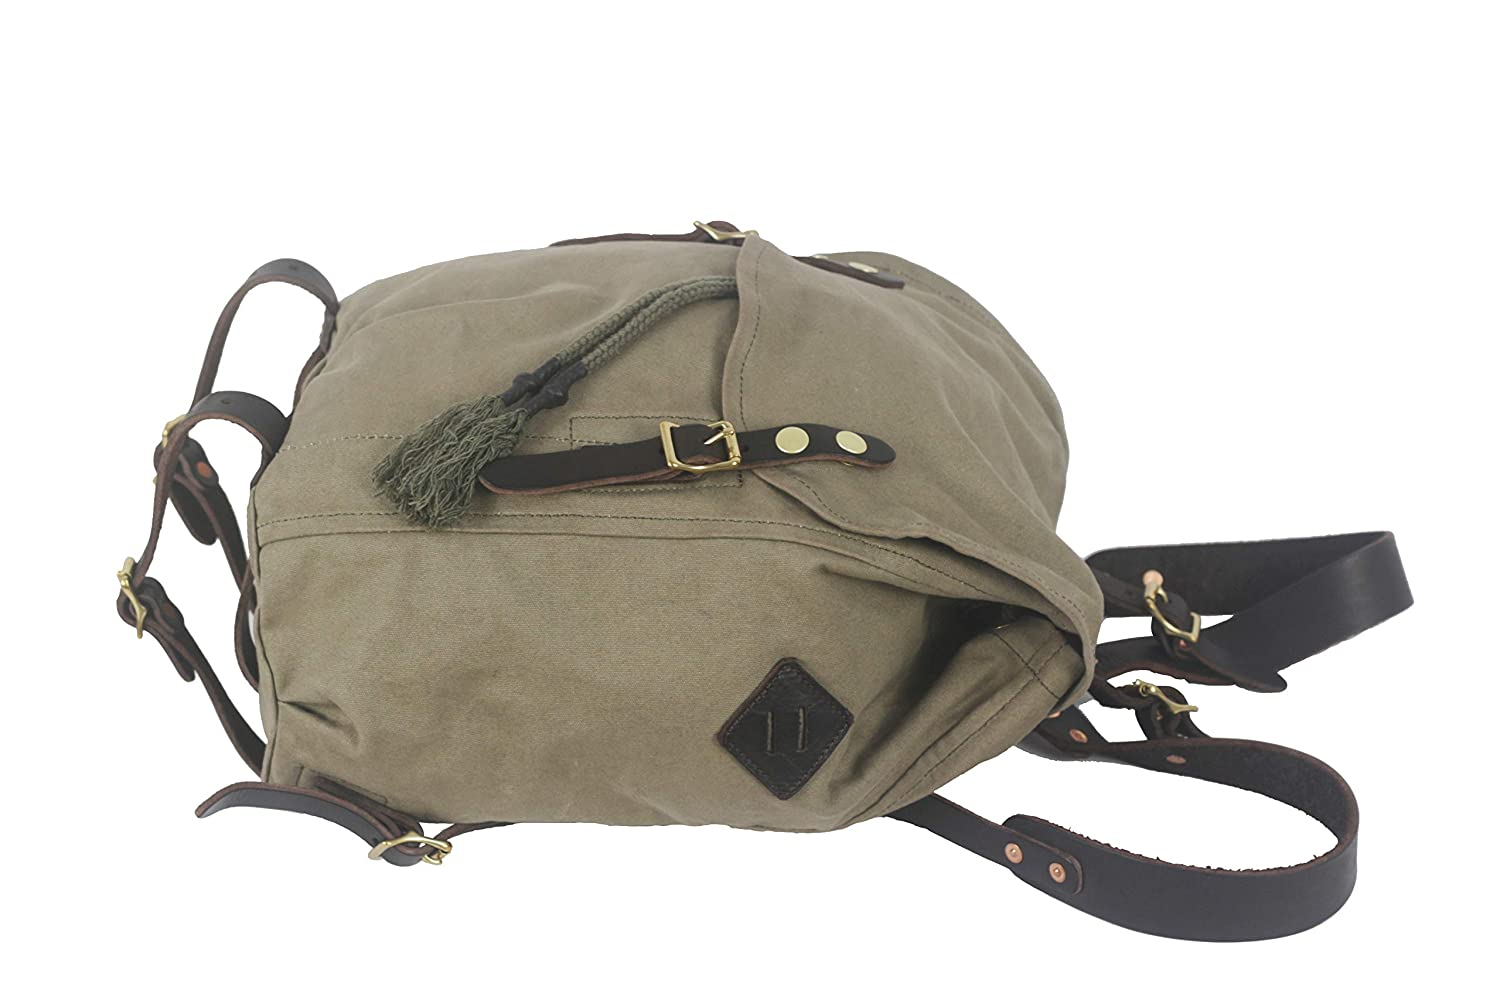 Armygreen Roverjeans rucksack retro military backpack outdoor travel bag